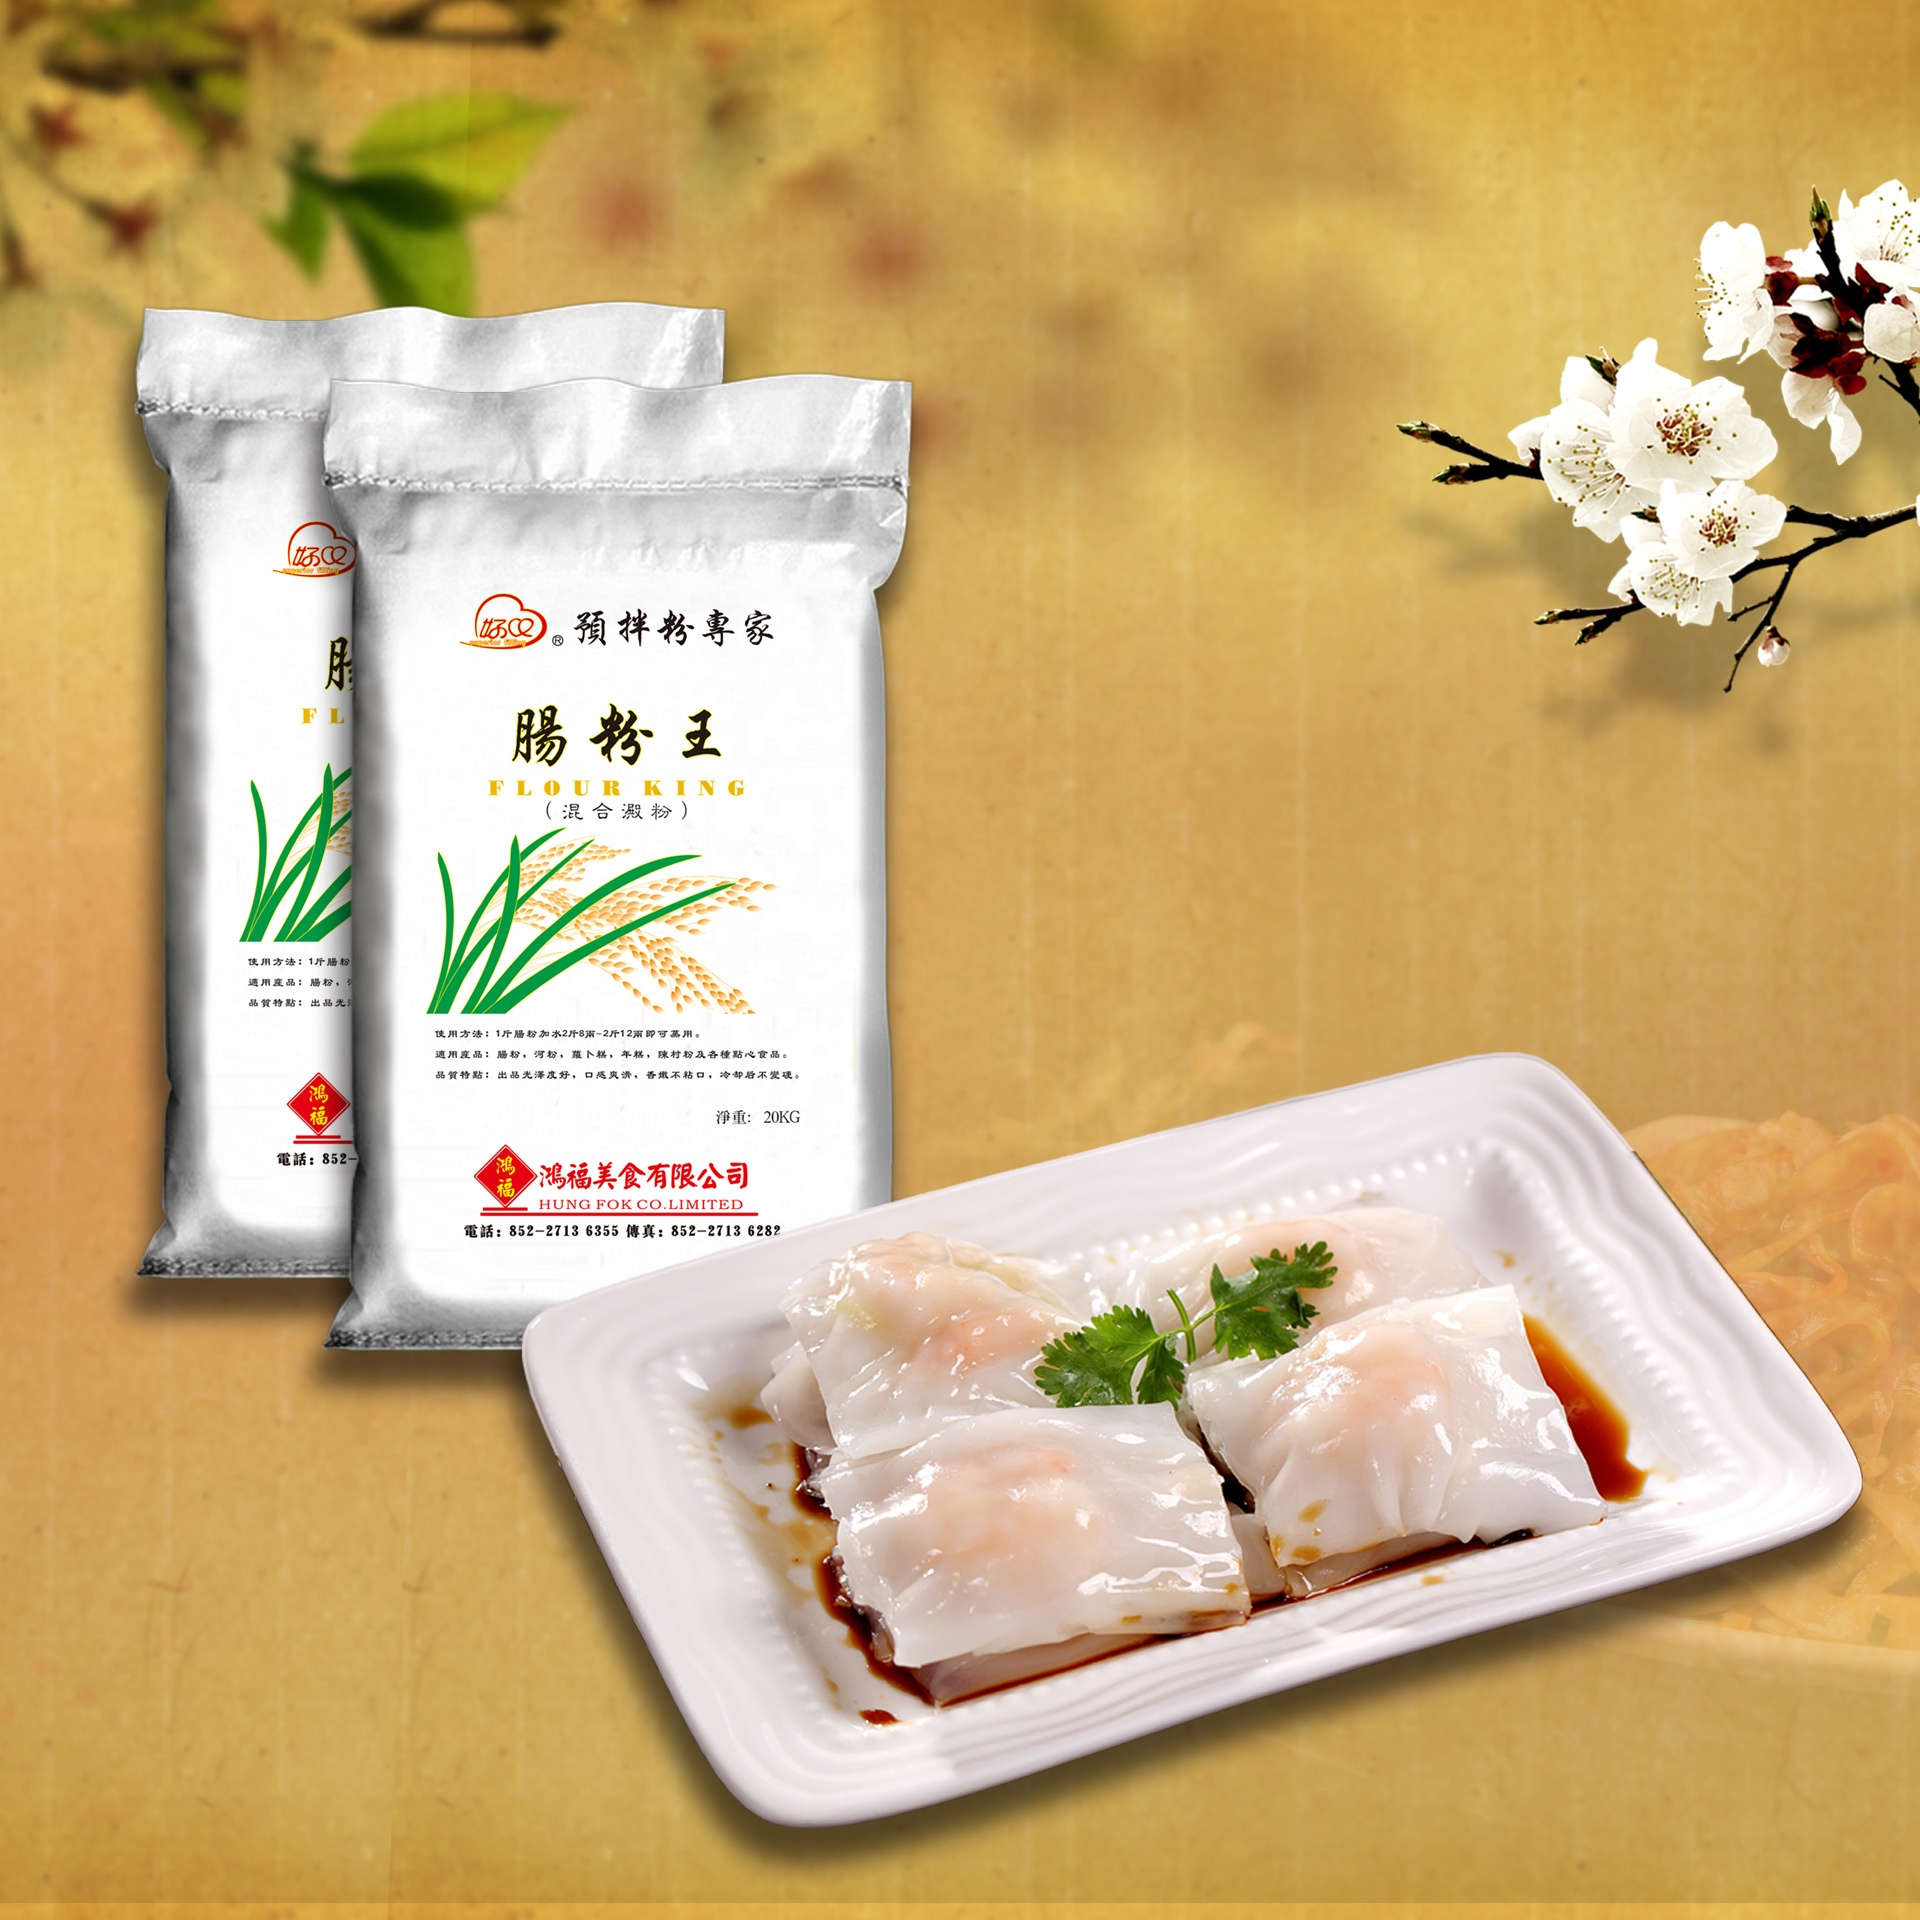 Superior Filling <strong>Rice</strong> Noodle Roll Chinatown Dim Sum Recipe Healthy <strong>Rice</strong> Powder vs <strong>Rice</strong> Flour Price in China